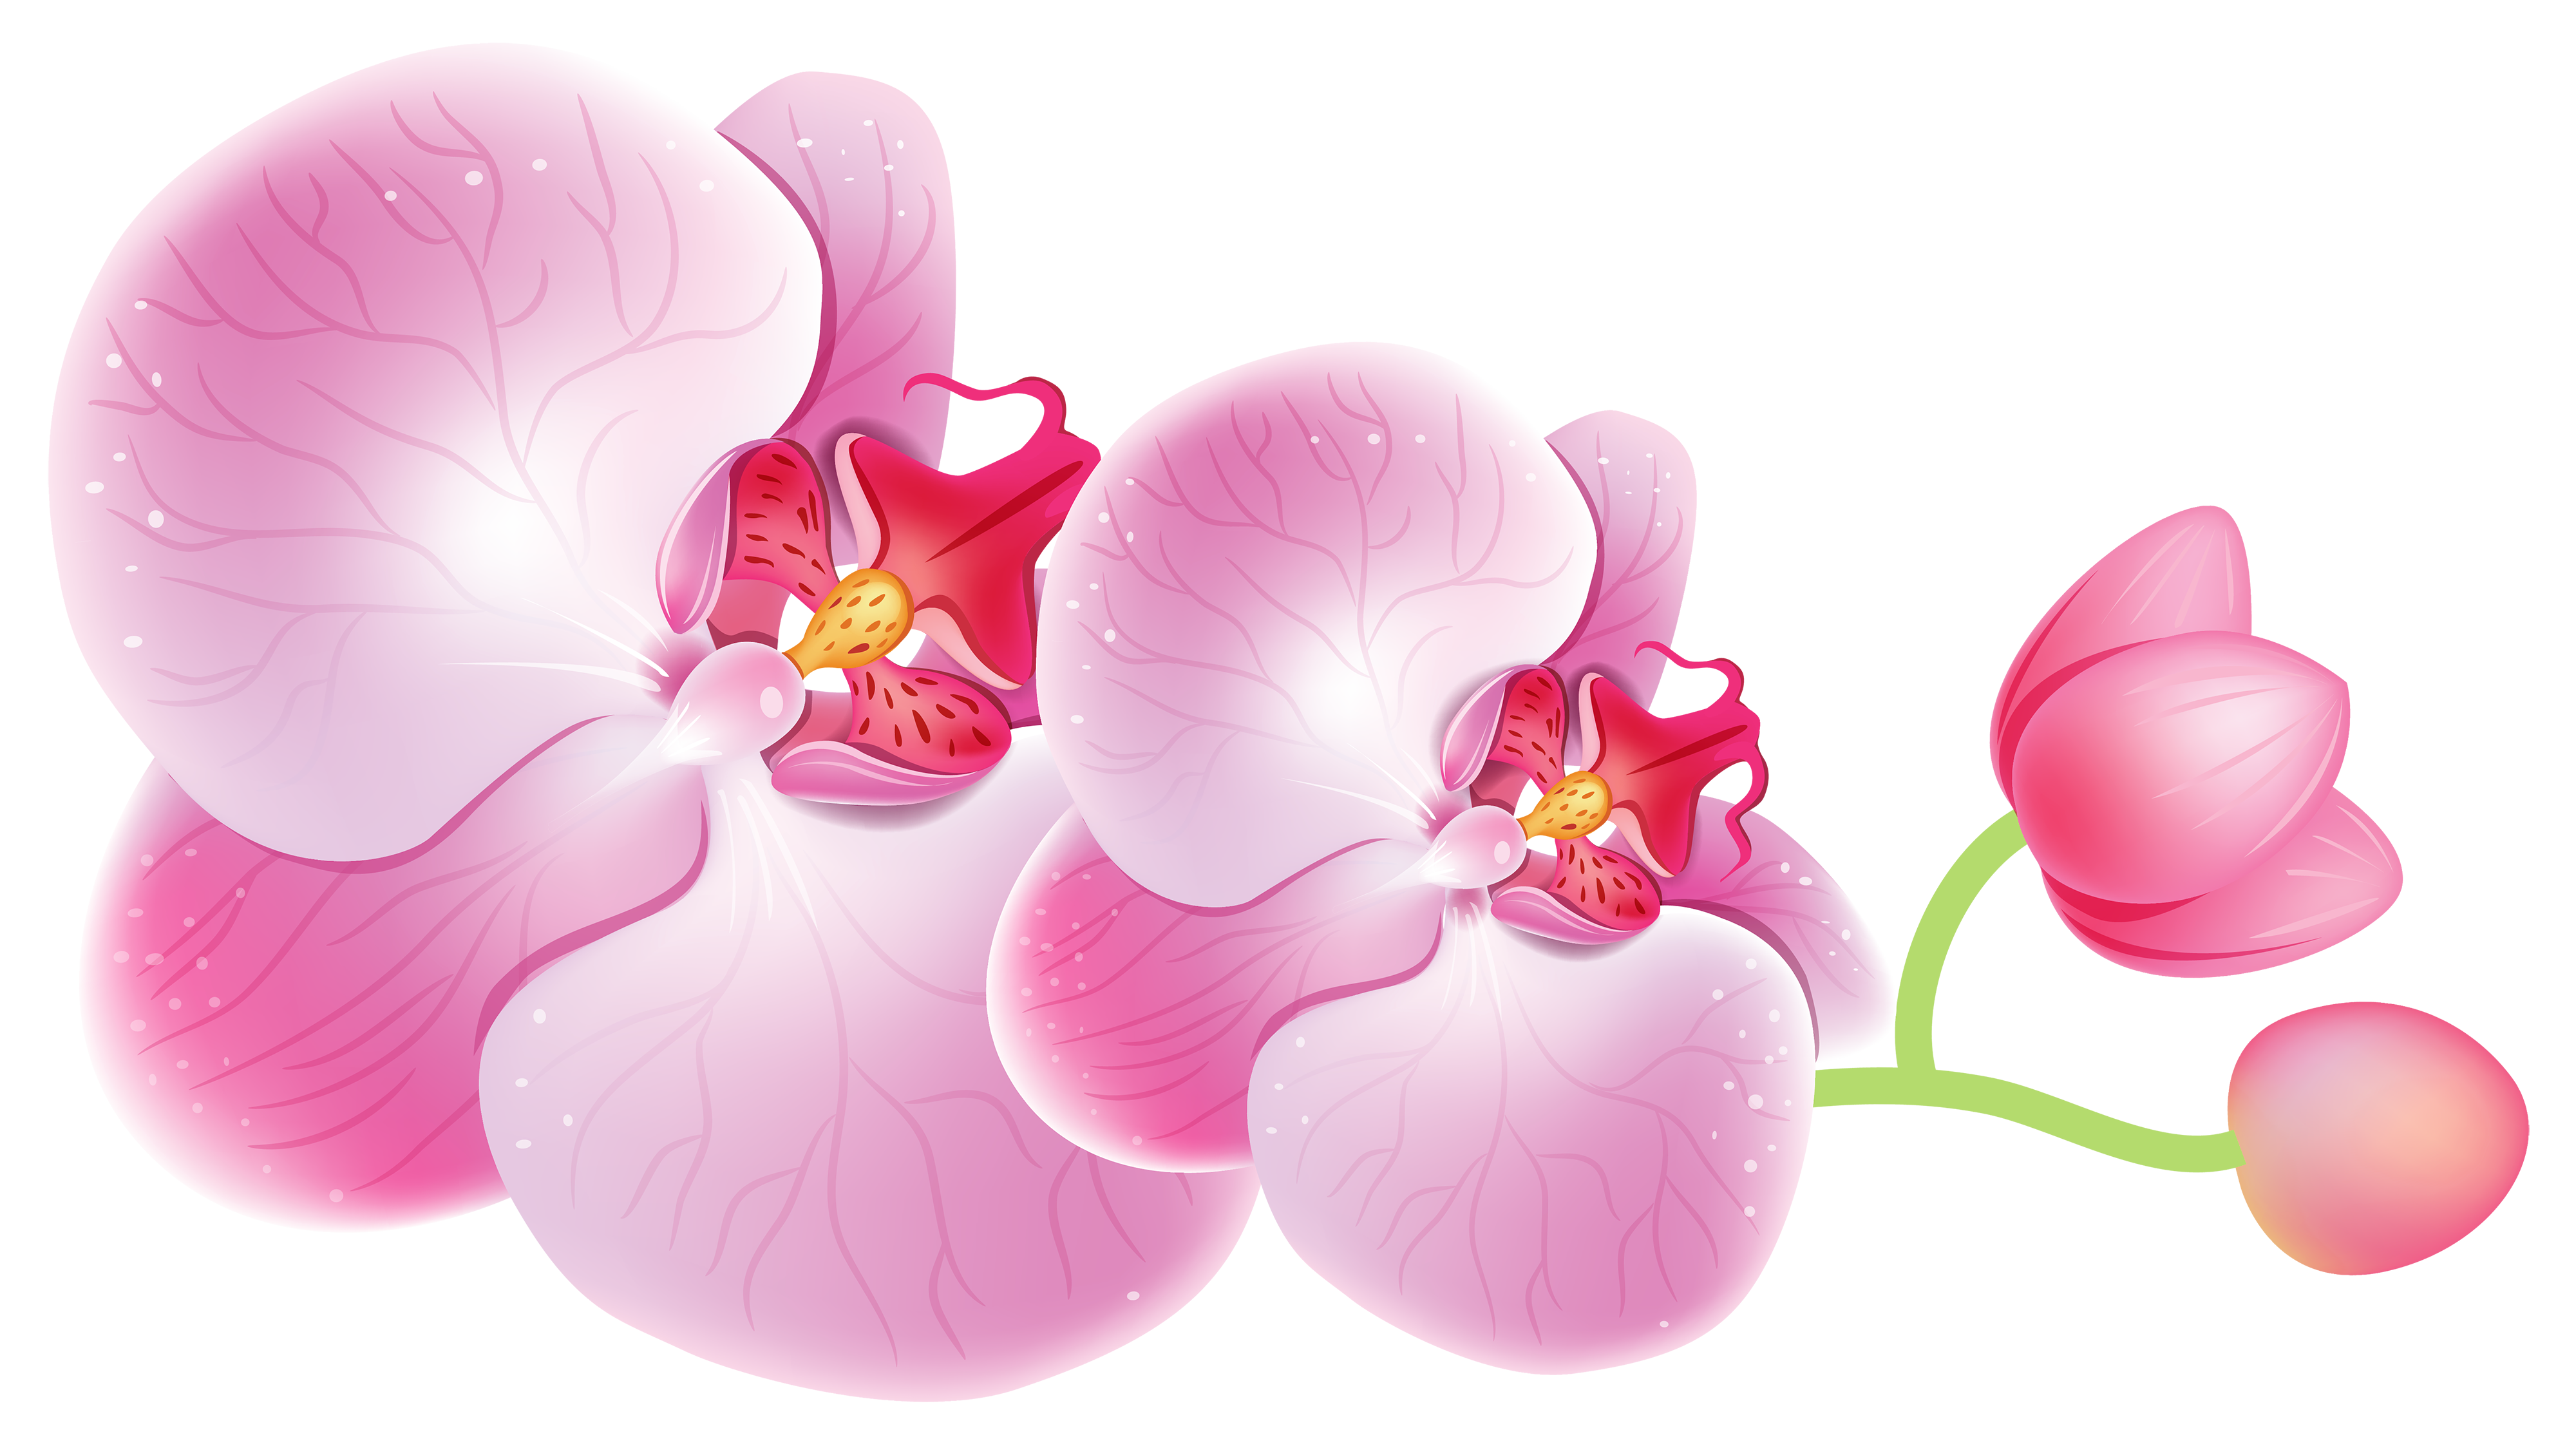 Orchid species clipart #6